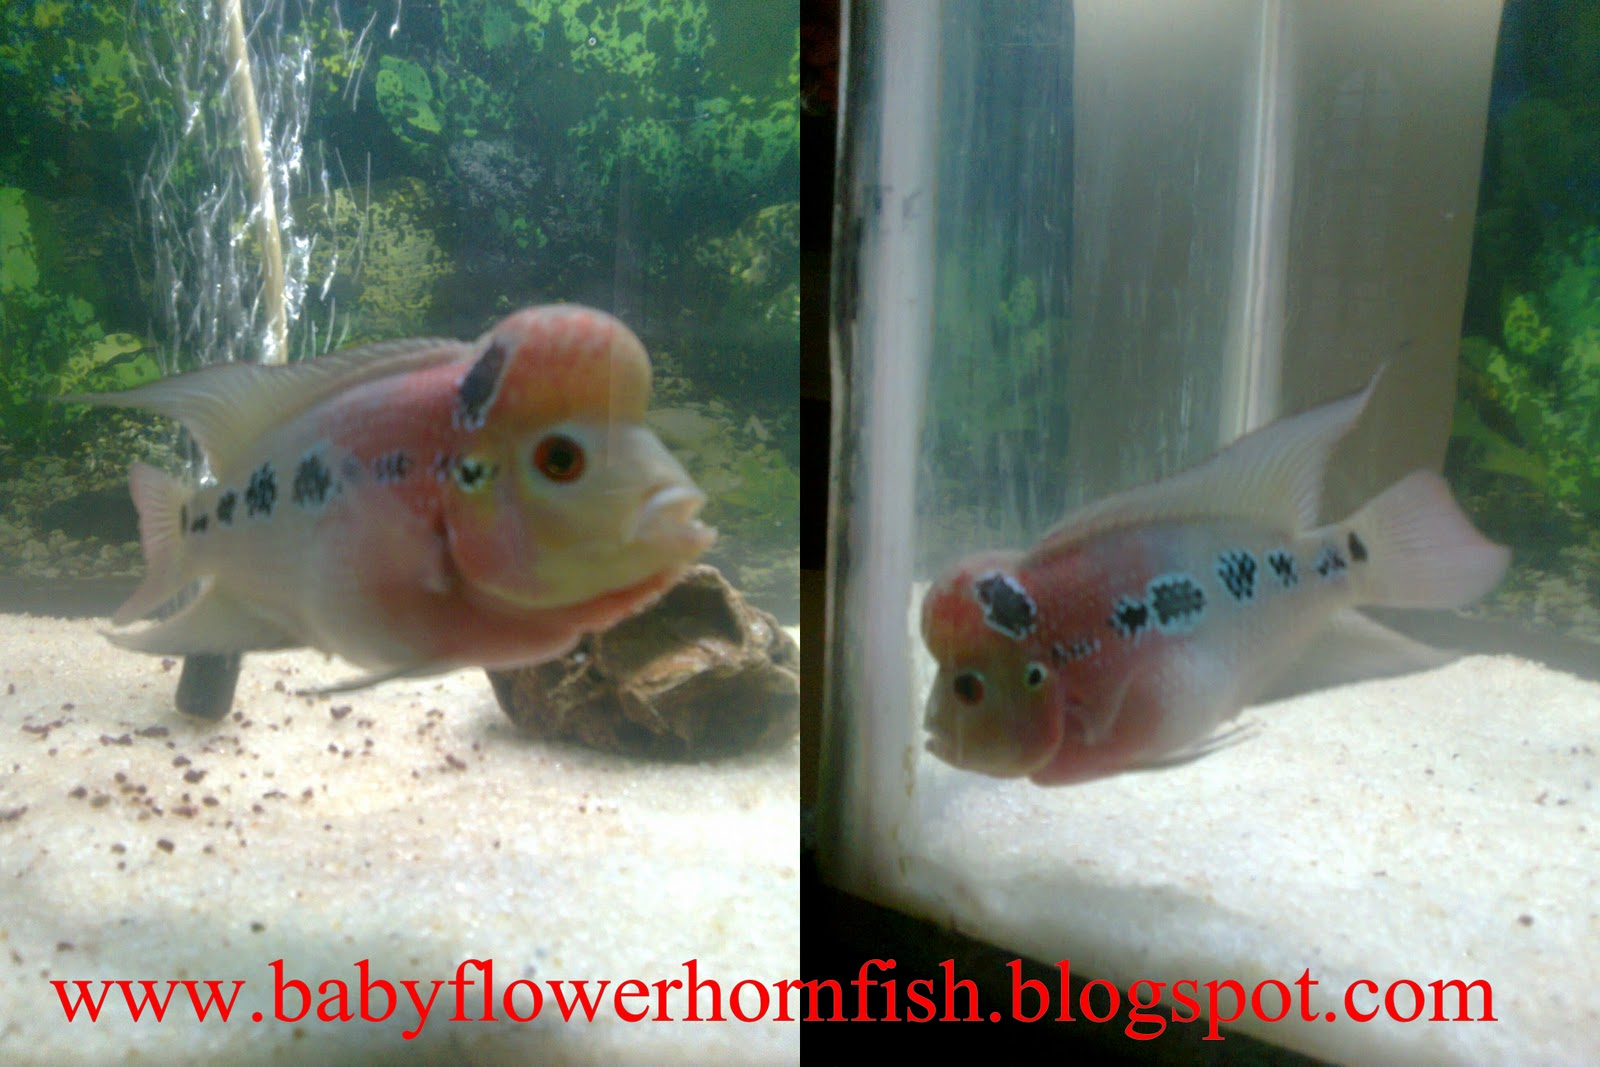 How to grow a baby flower horn in this snap you can see hump formationgood shape nvjuhfo Gallery